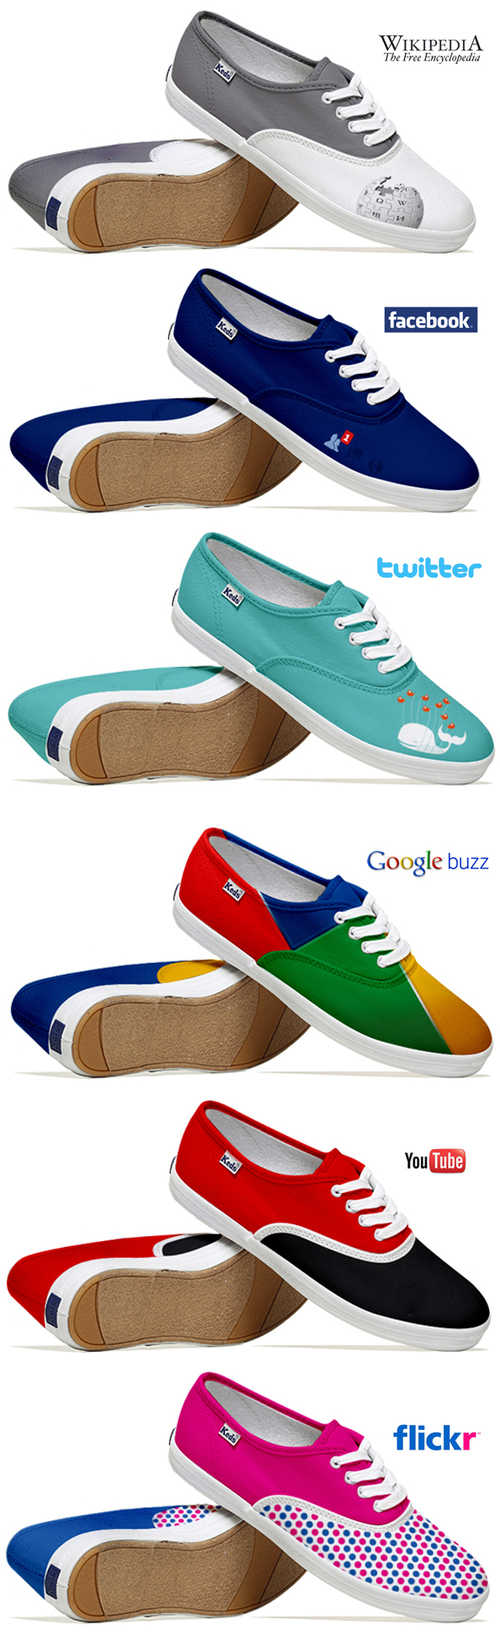 Sneakers2_large